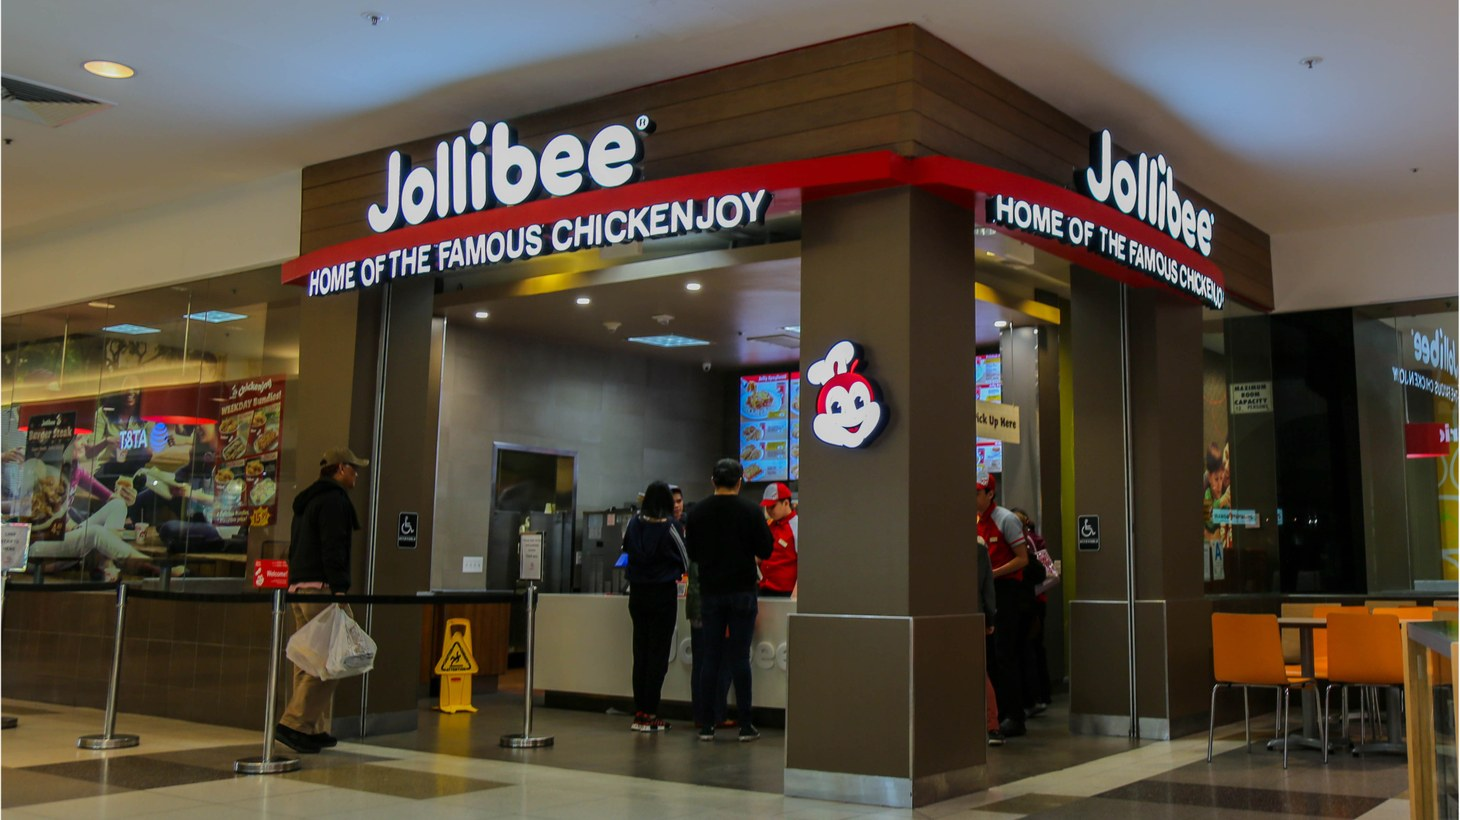 Jollibee is a Filipino fast food chain with more than 1,200 restaurants worldwide, including Times Square.